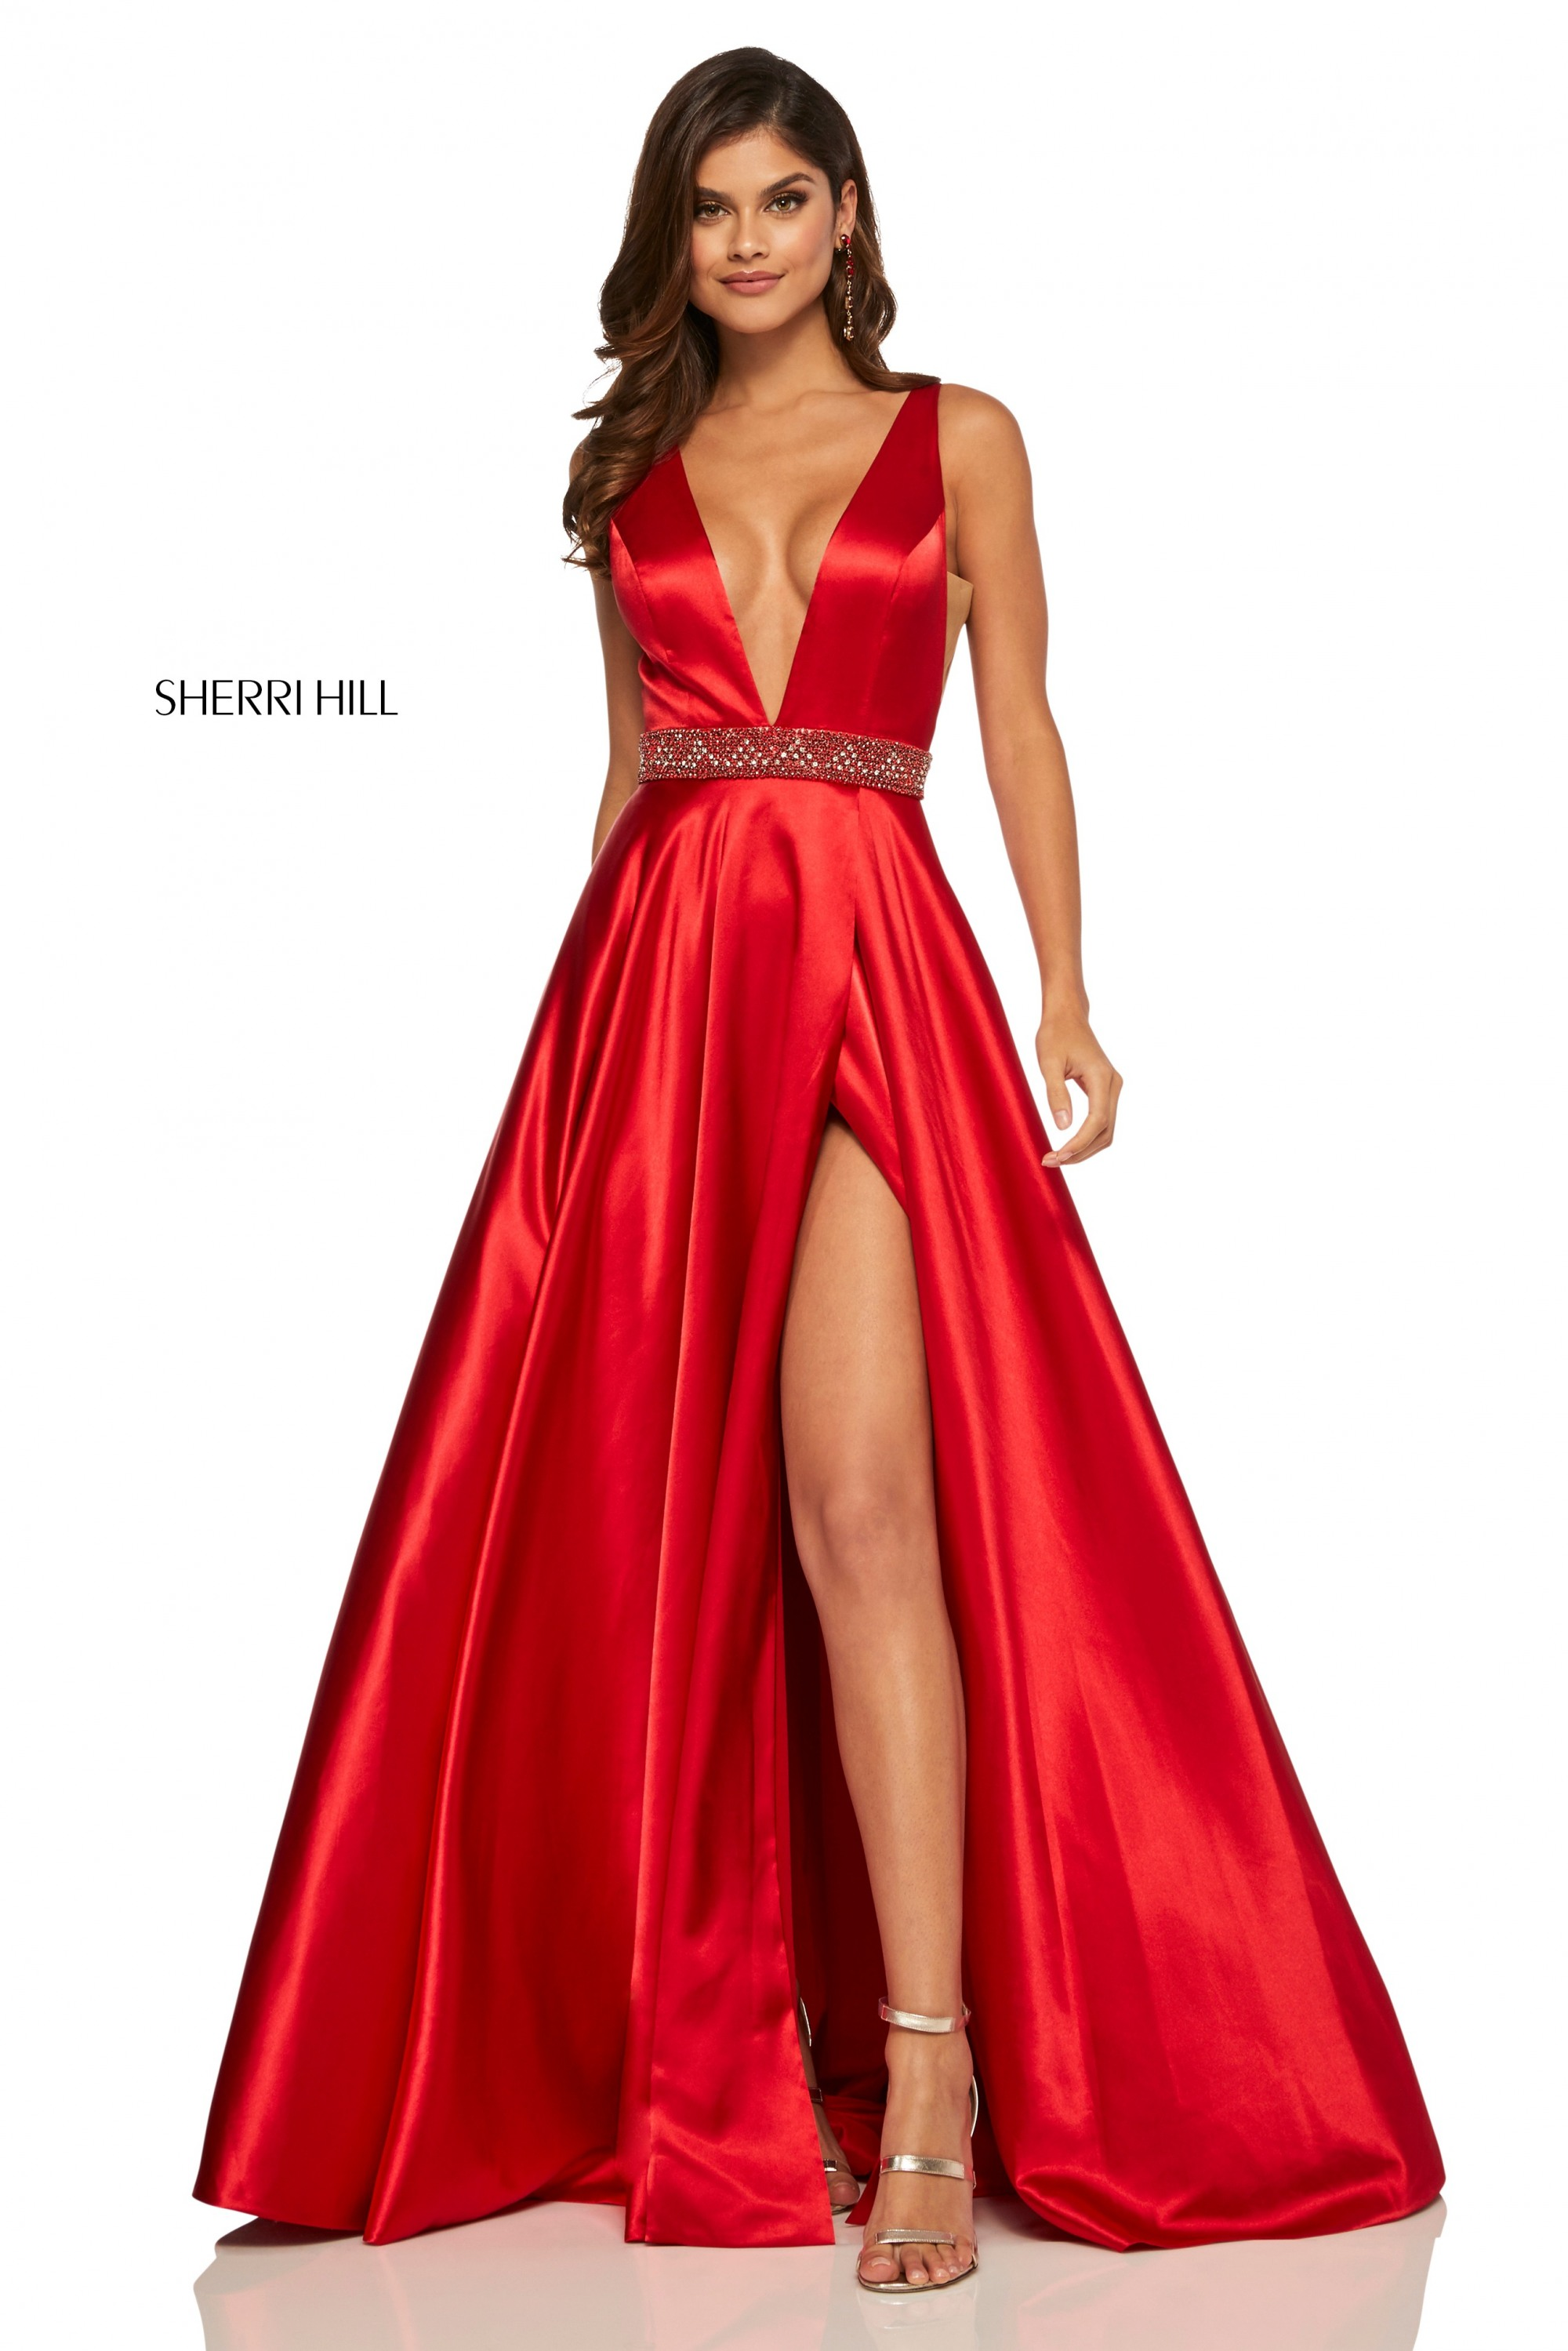 Sherri Hill 52564 Red Dress